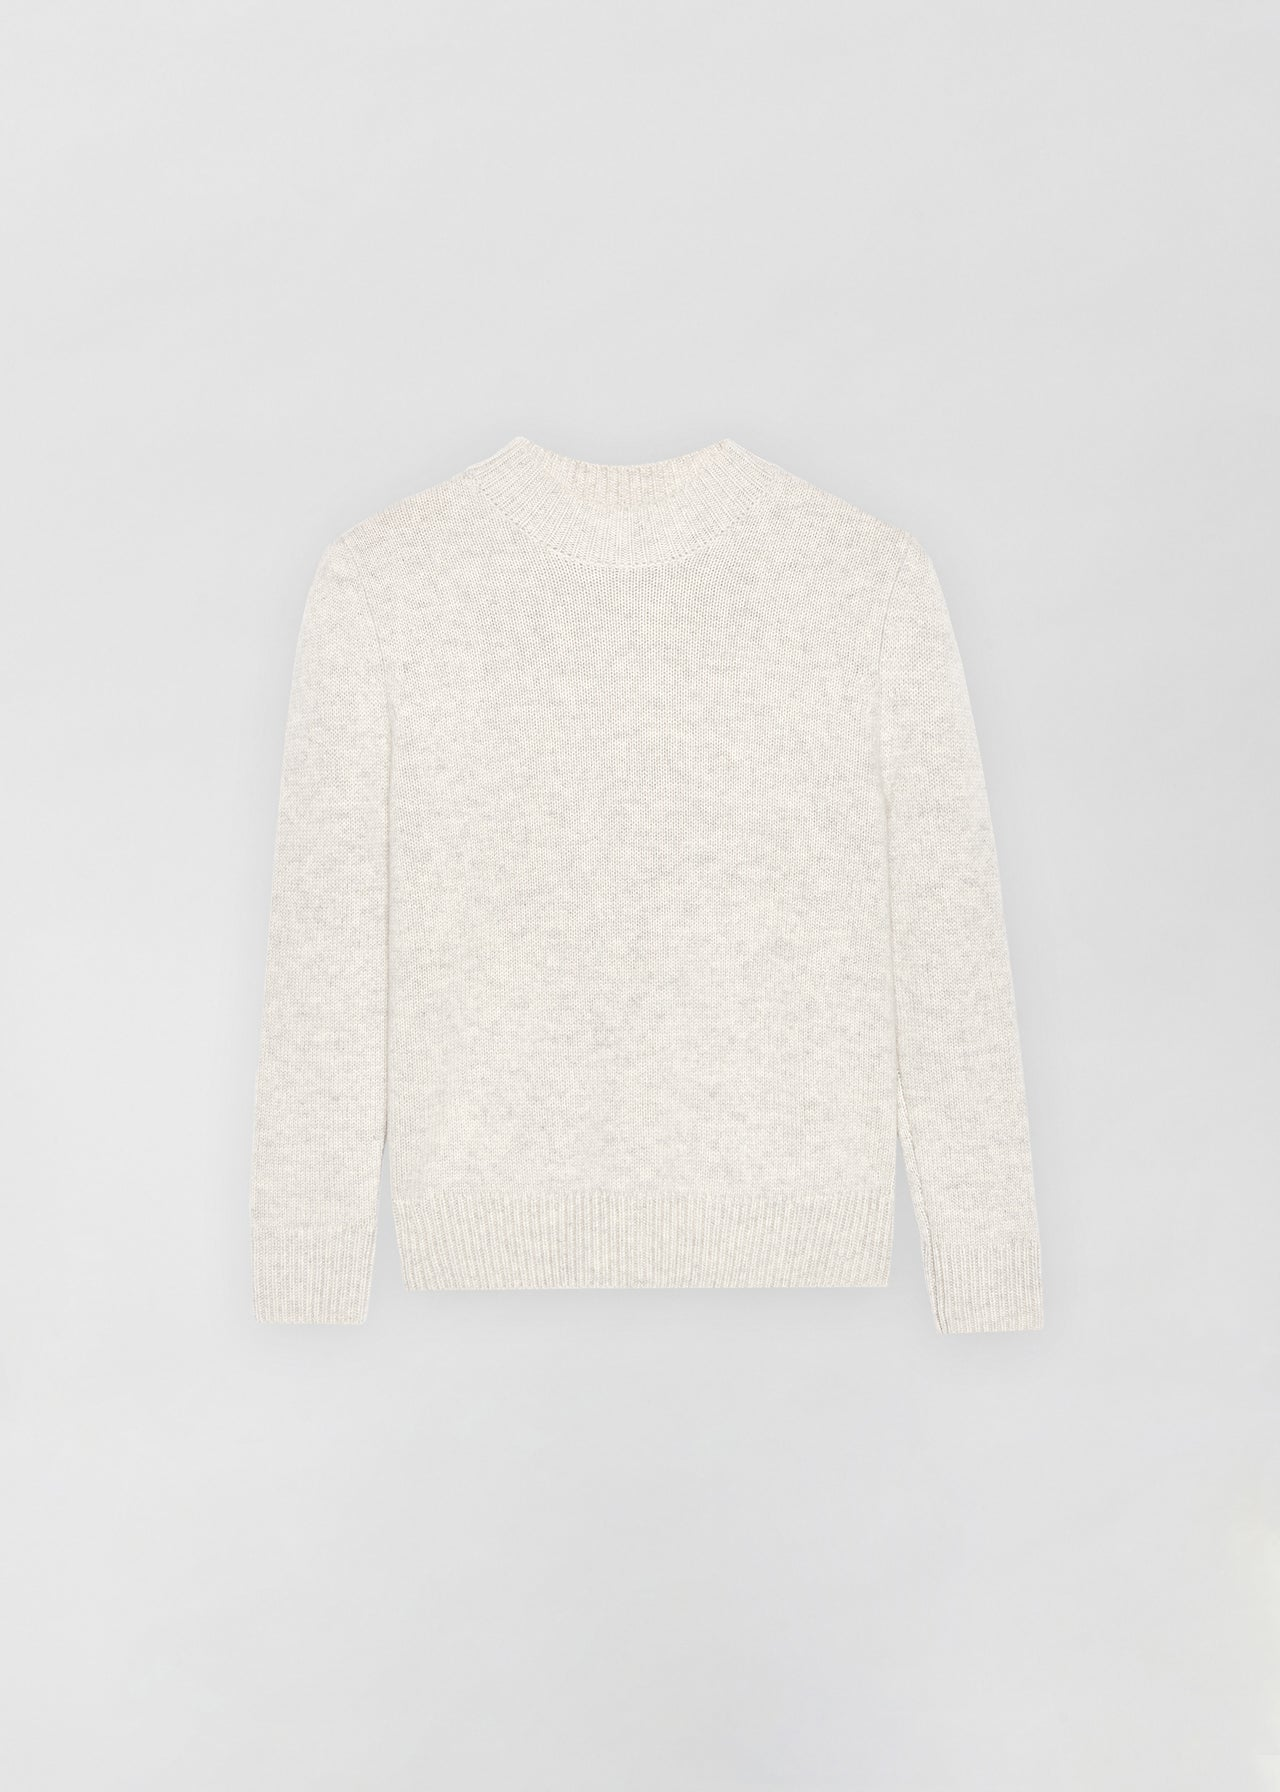 Cashmere Crew Neck Sweater - Chalk